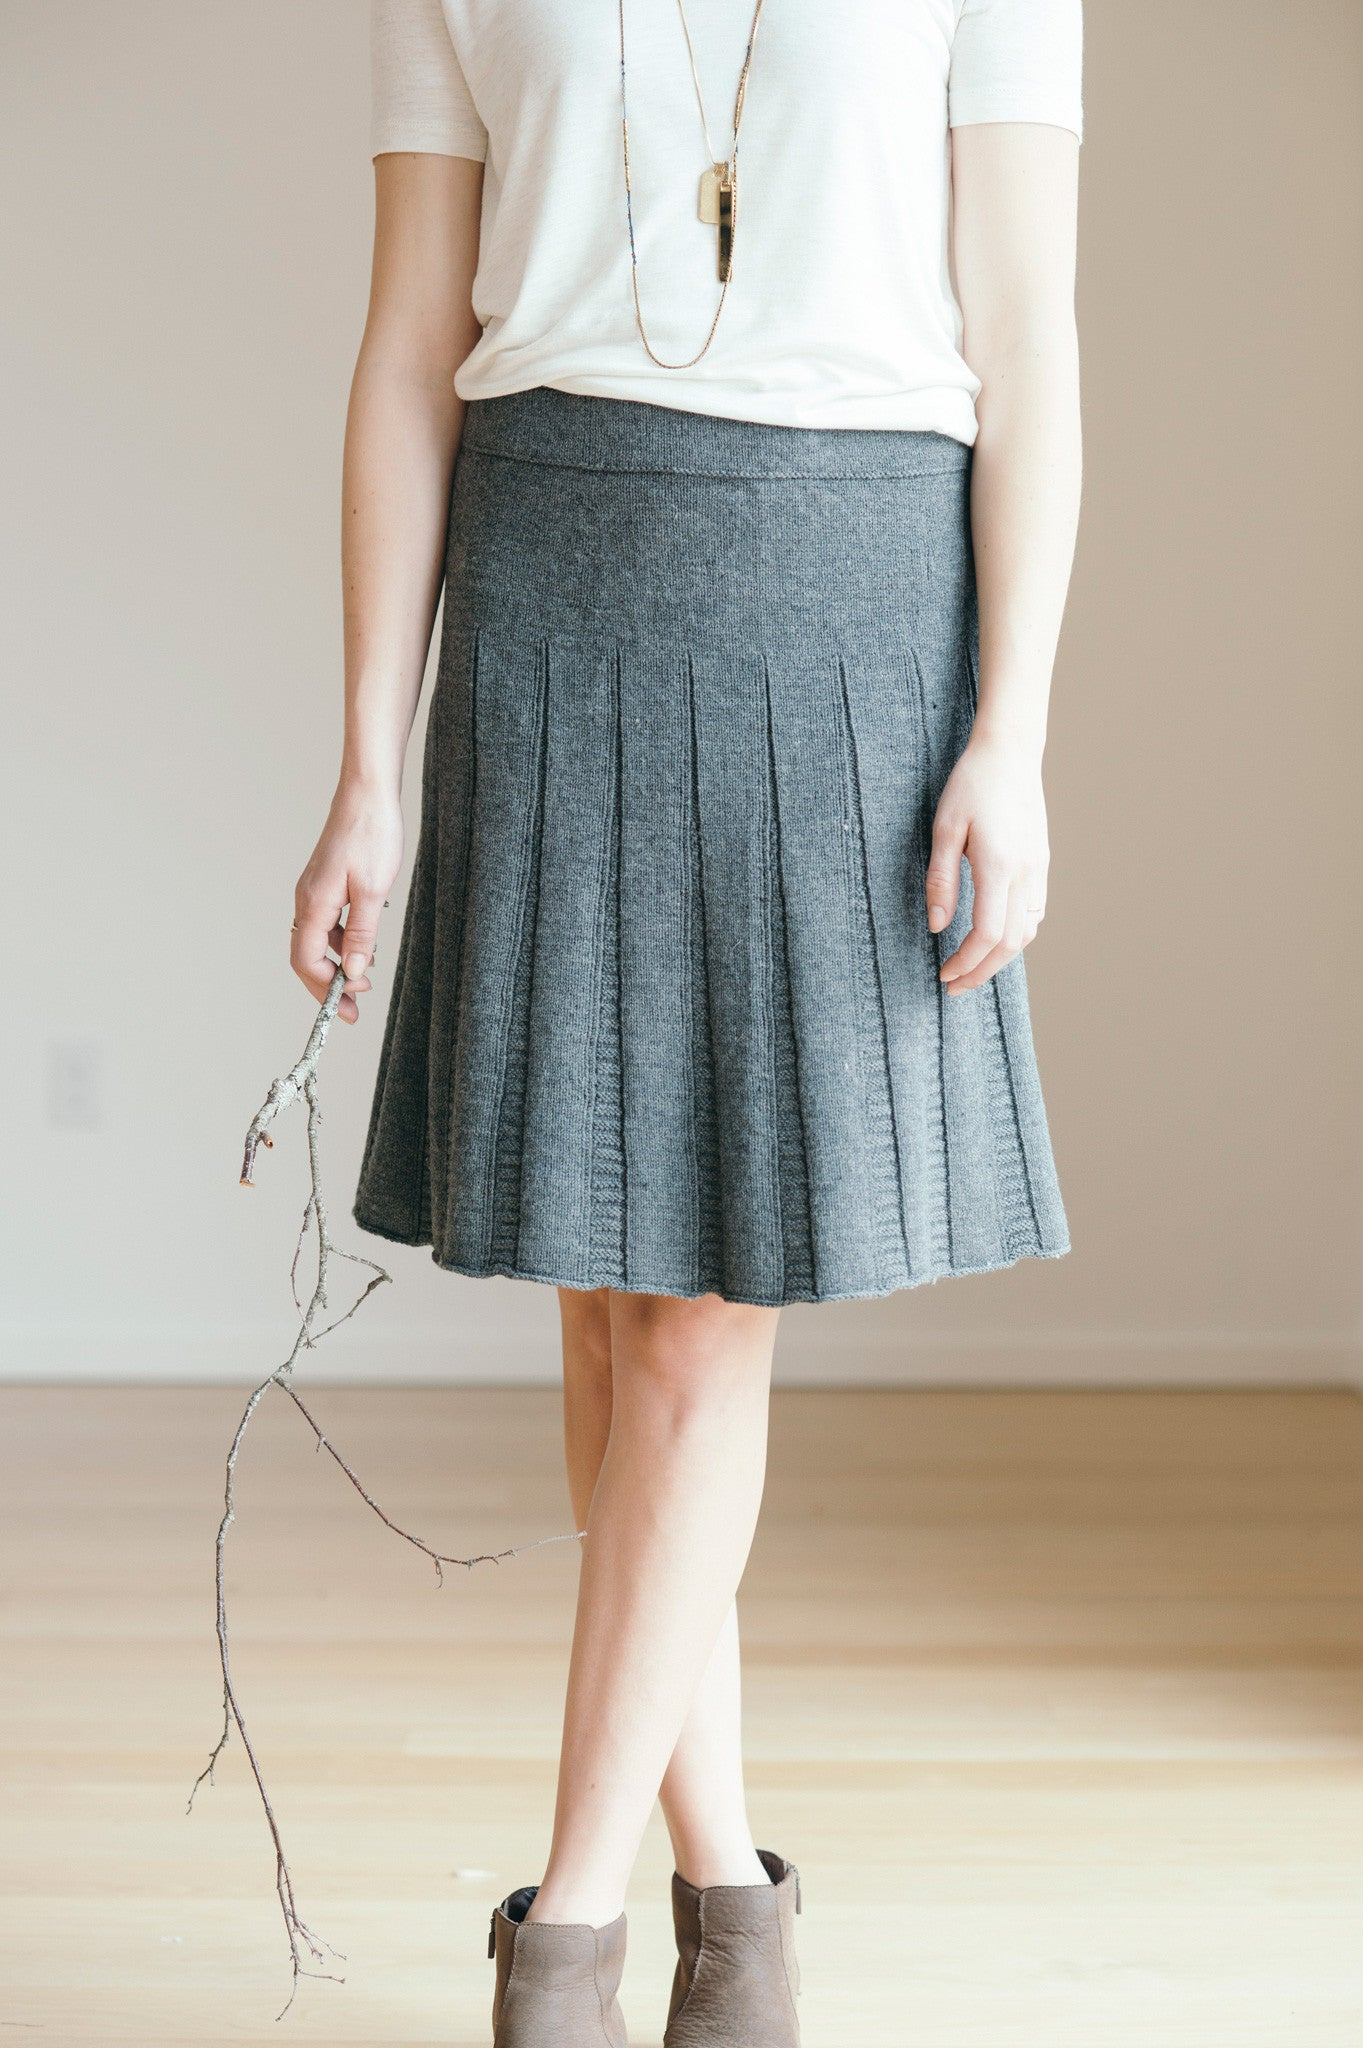 tavia skirt knitting pattern - Quince and Co